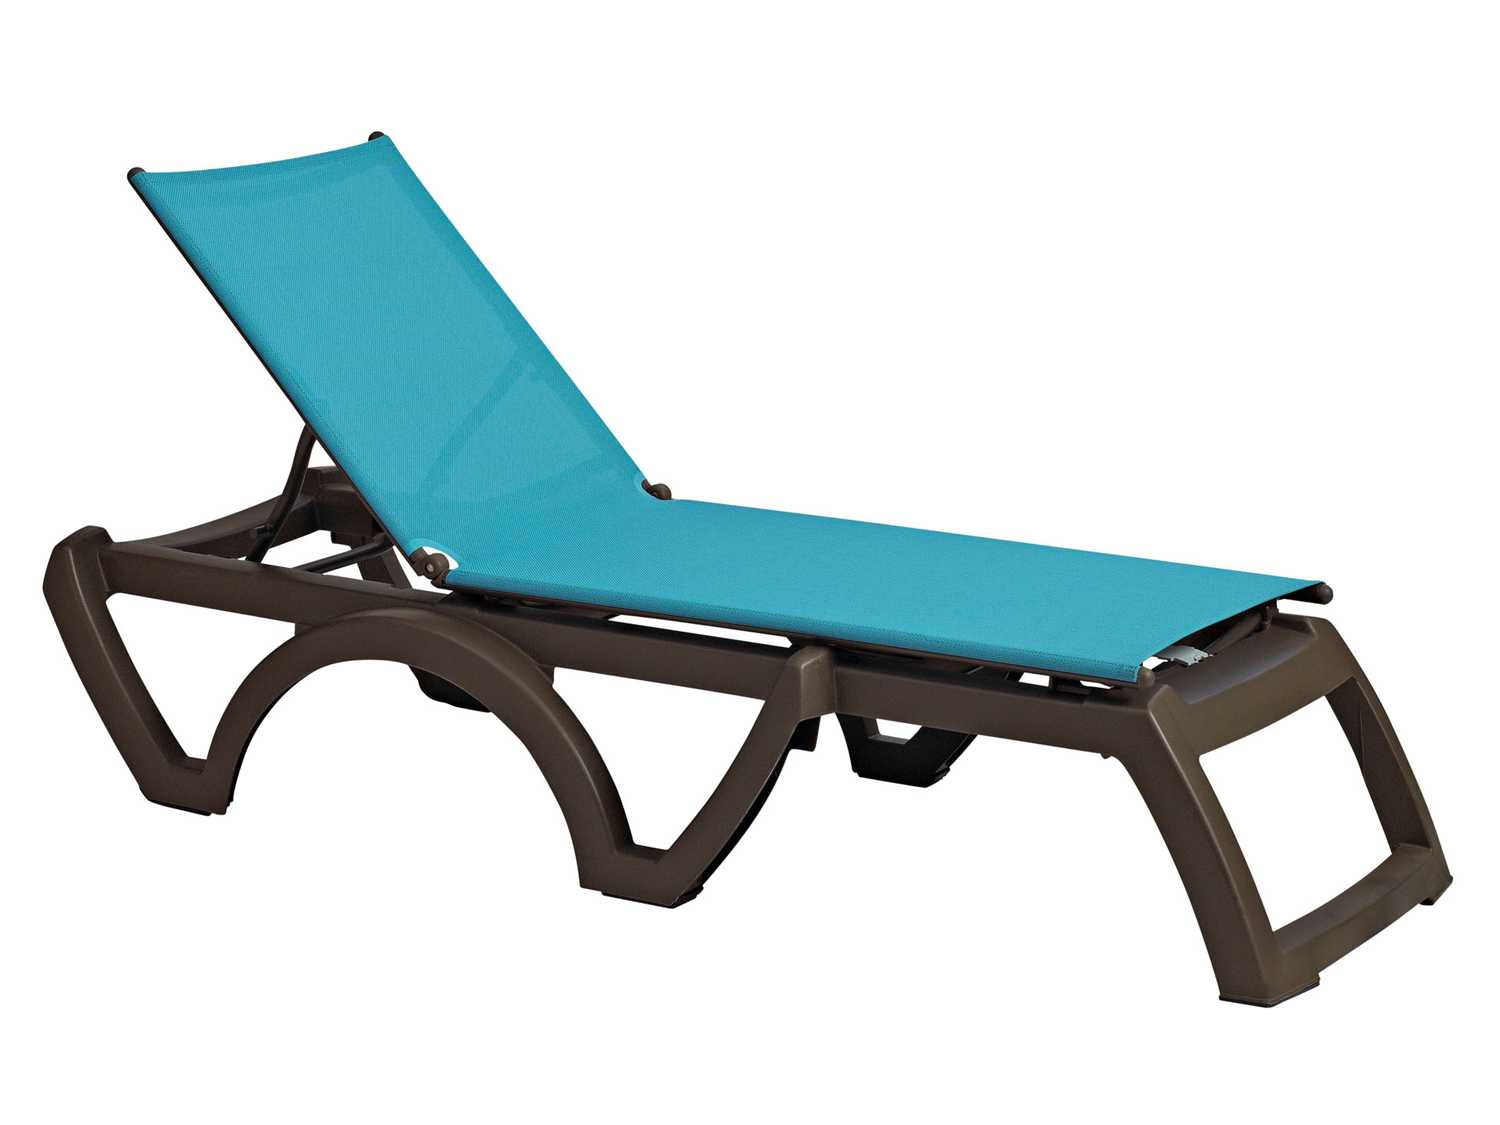 Grosfillex calypso resin bronze mist chaise sold in 2 - Grosfillex chaise longue ...